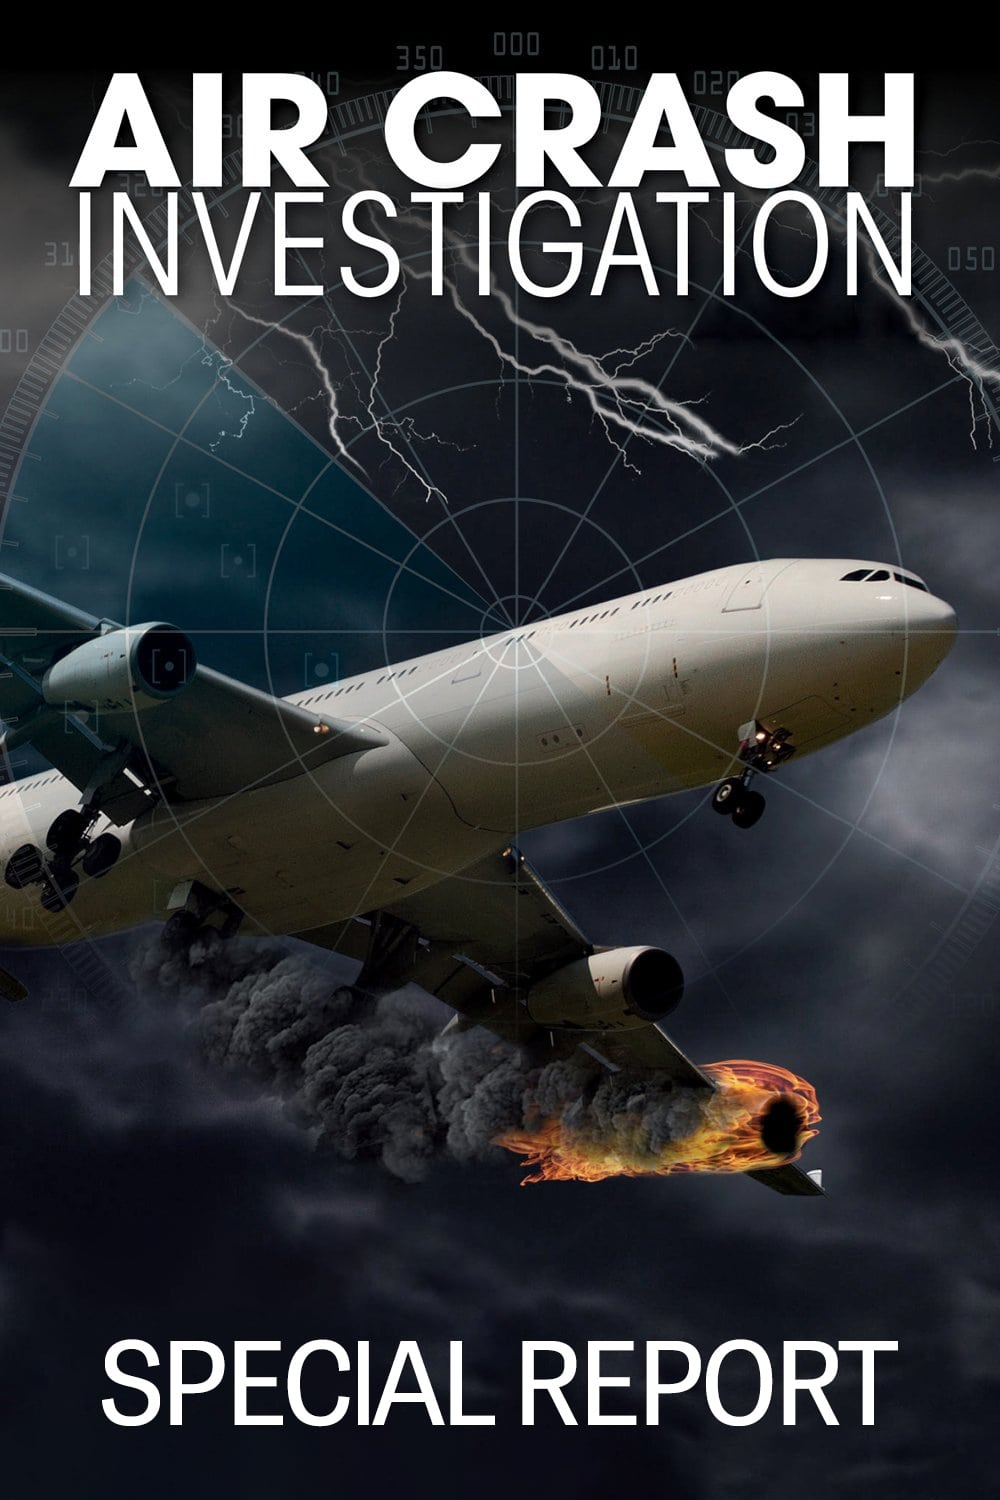 Mayday: The Accident Files TV Shows About Airplane Crash